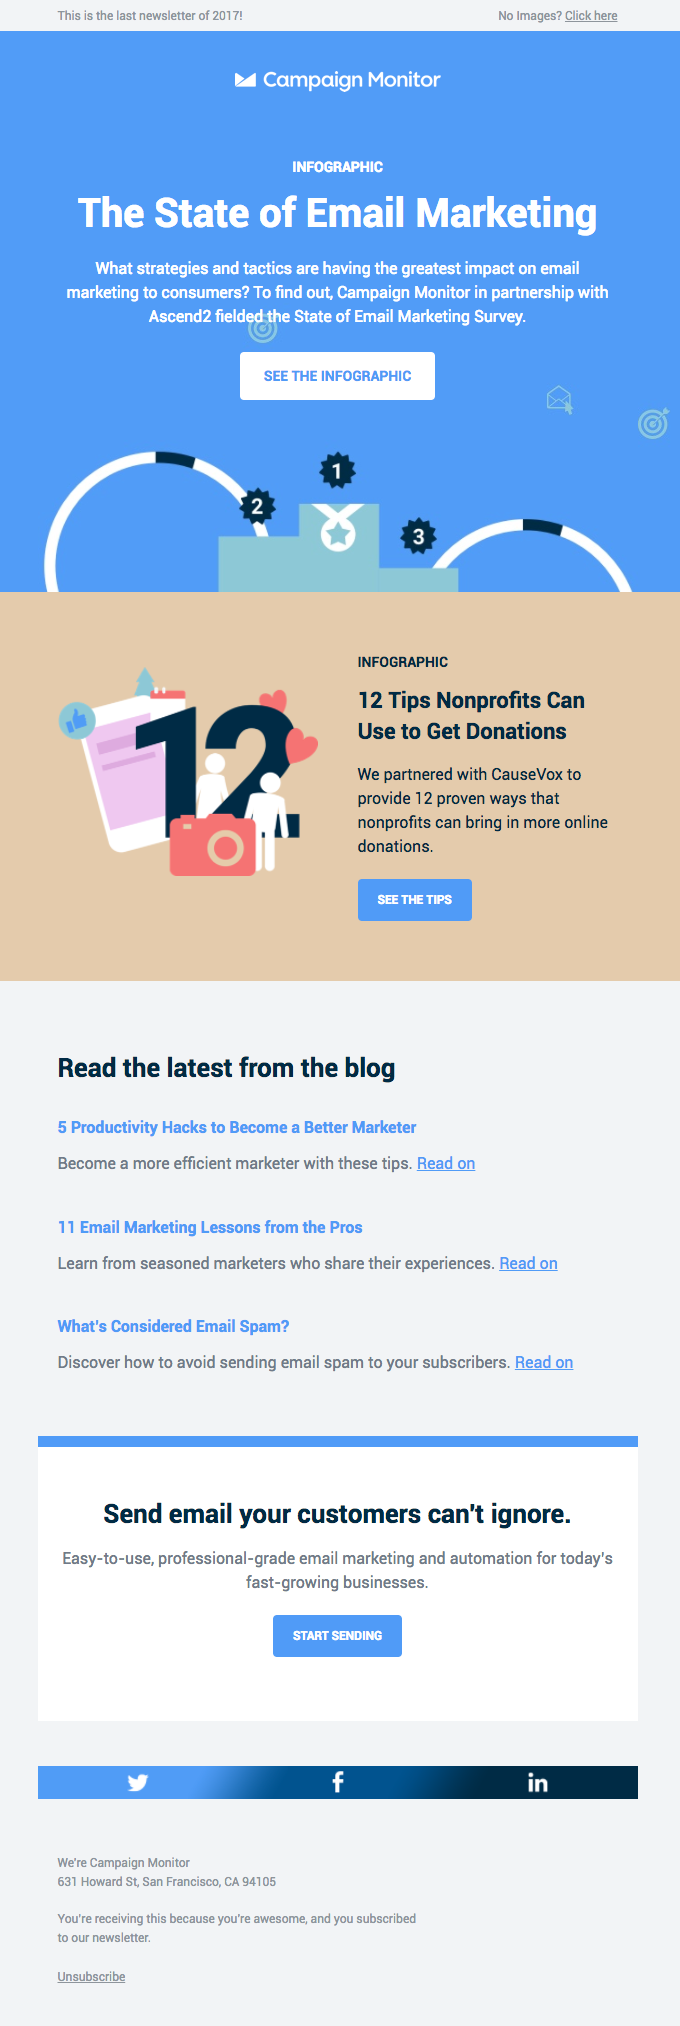 December News: The State of Email Marketing and Much More 🎉